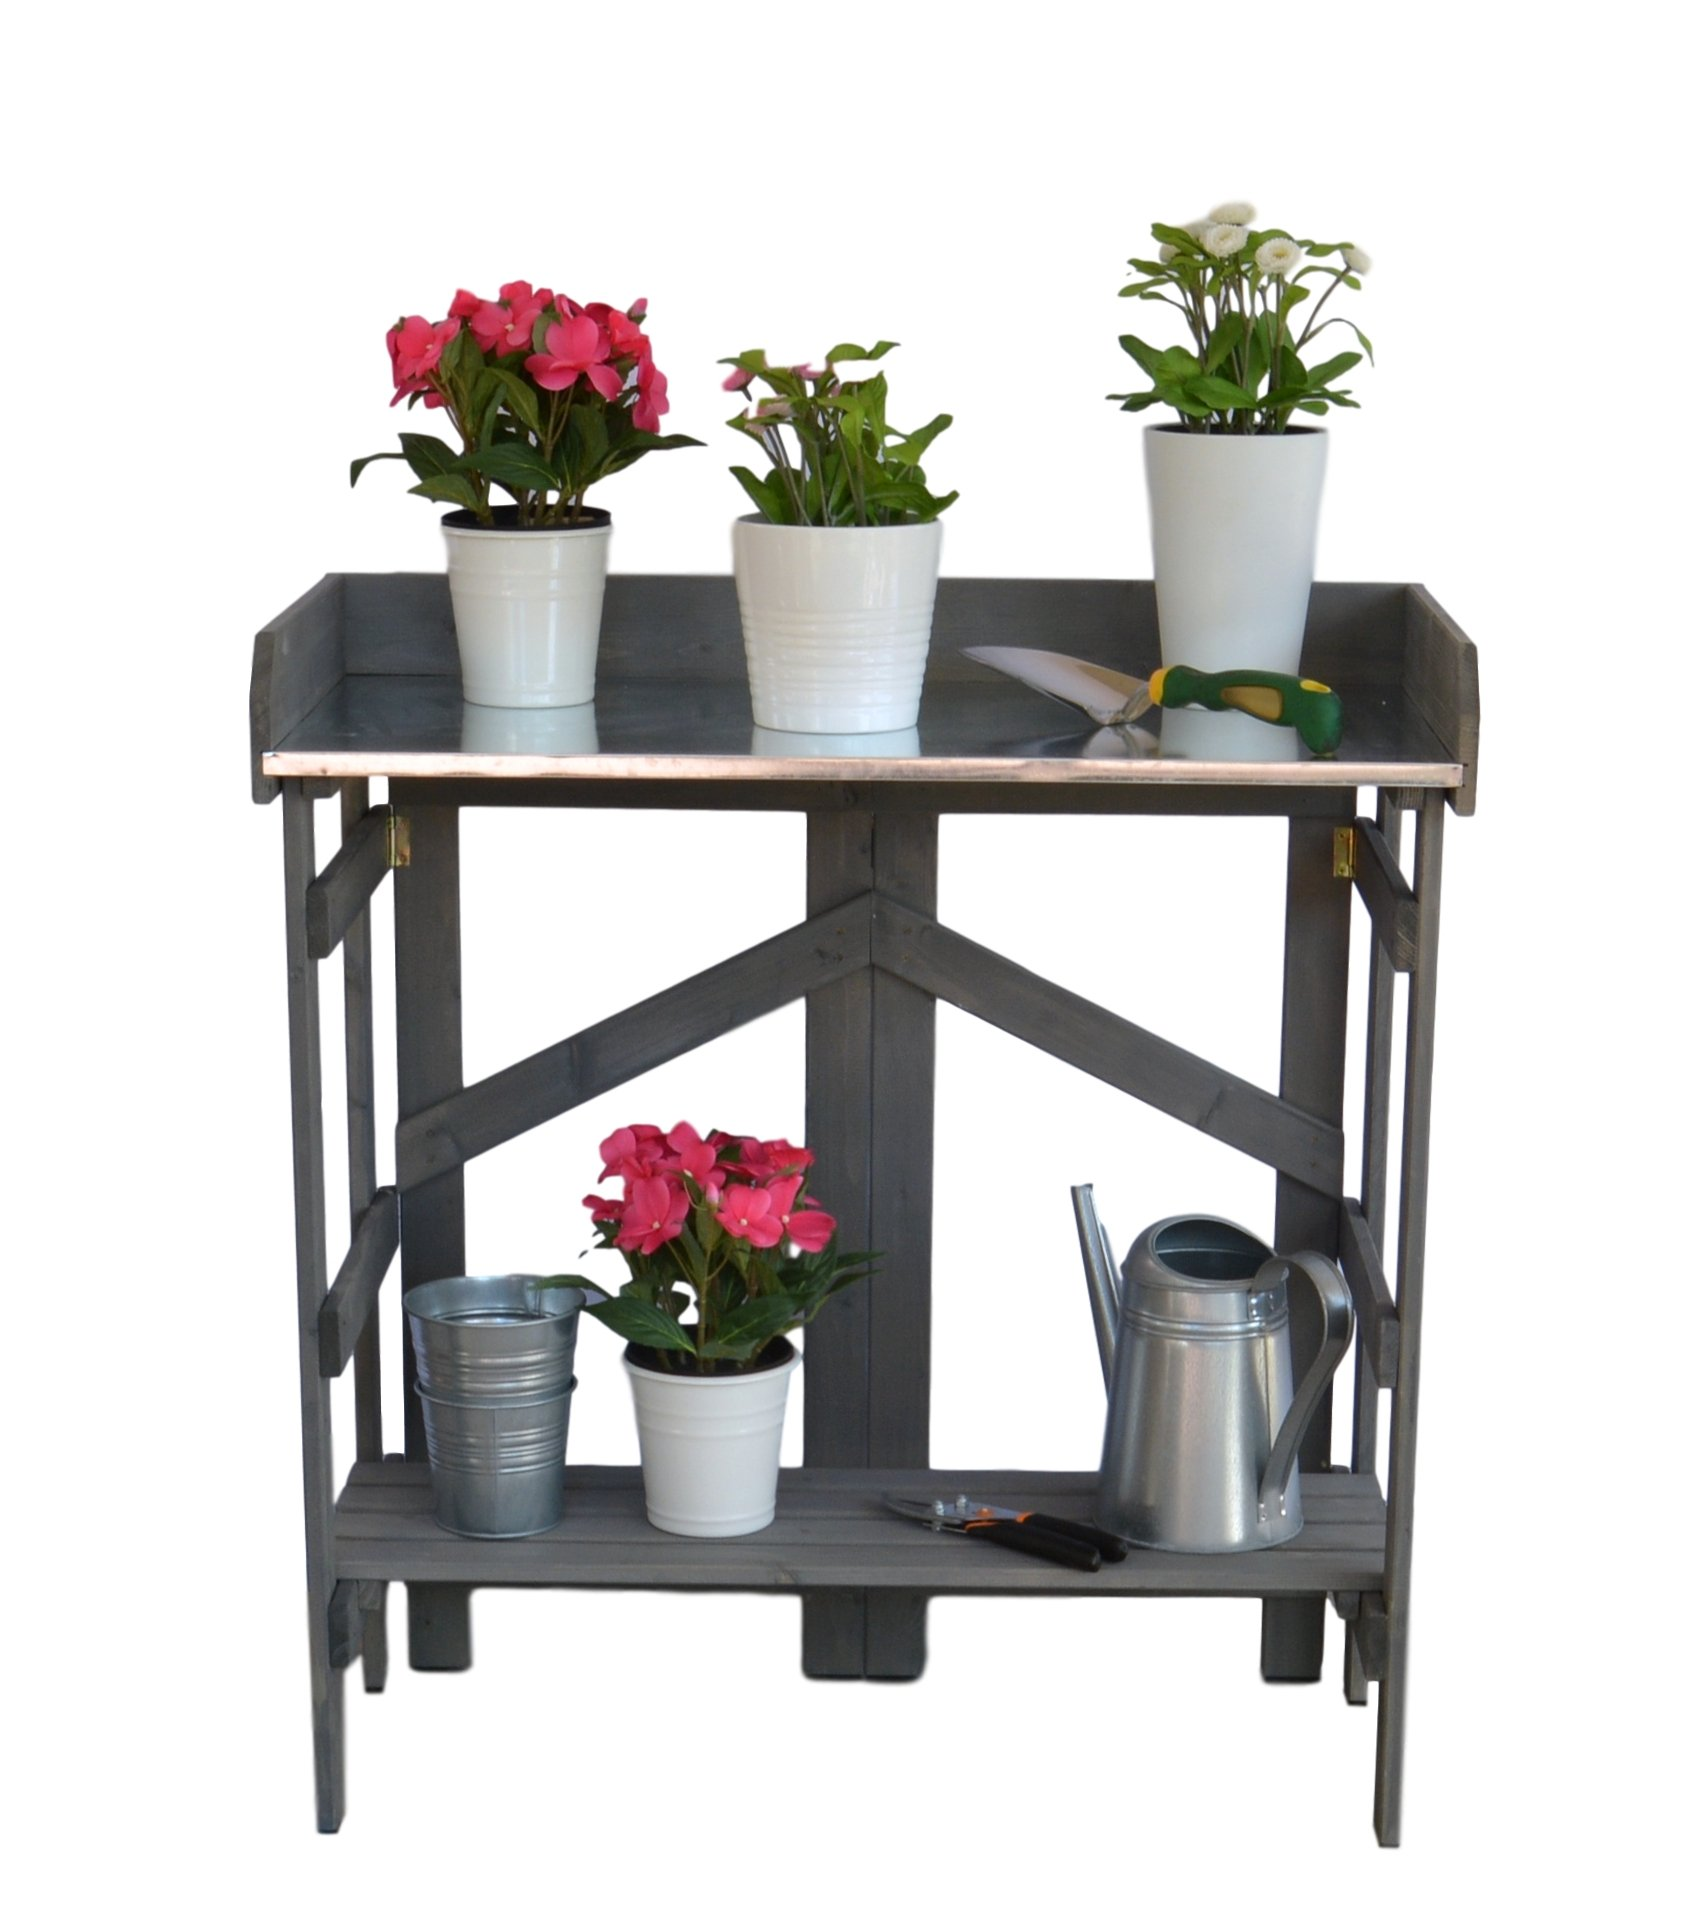 Get Quotations Vytal Folding Potting Bench Event Table Gray Ideal For Outdoor Gardening Or